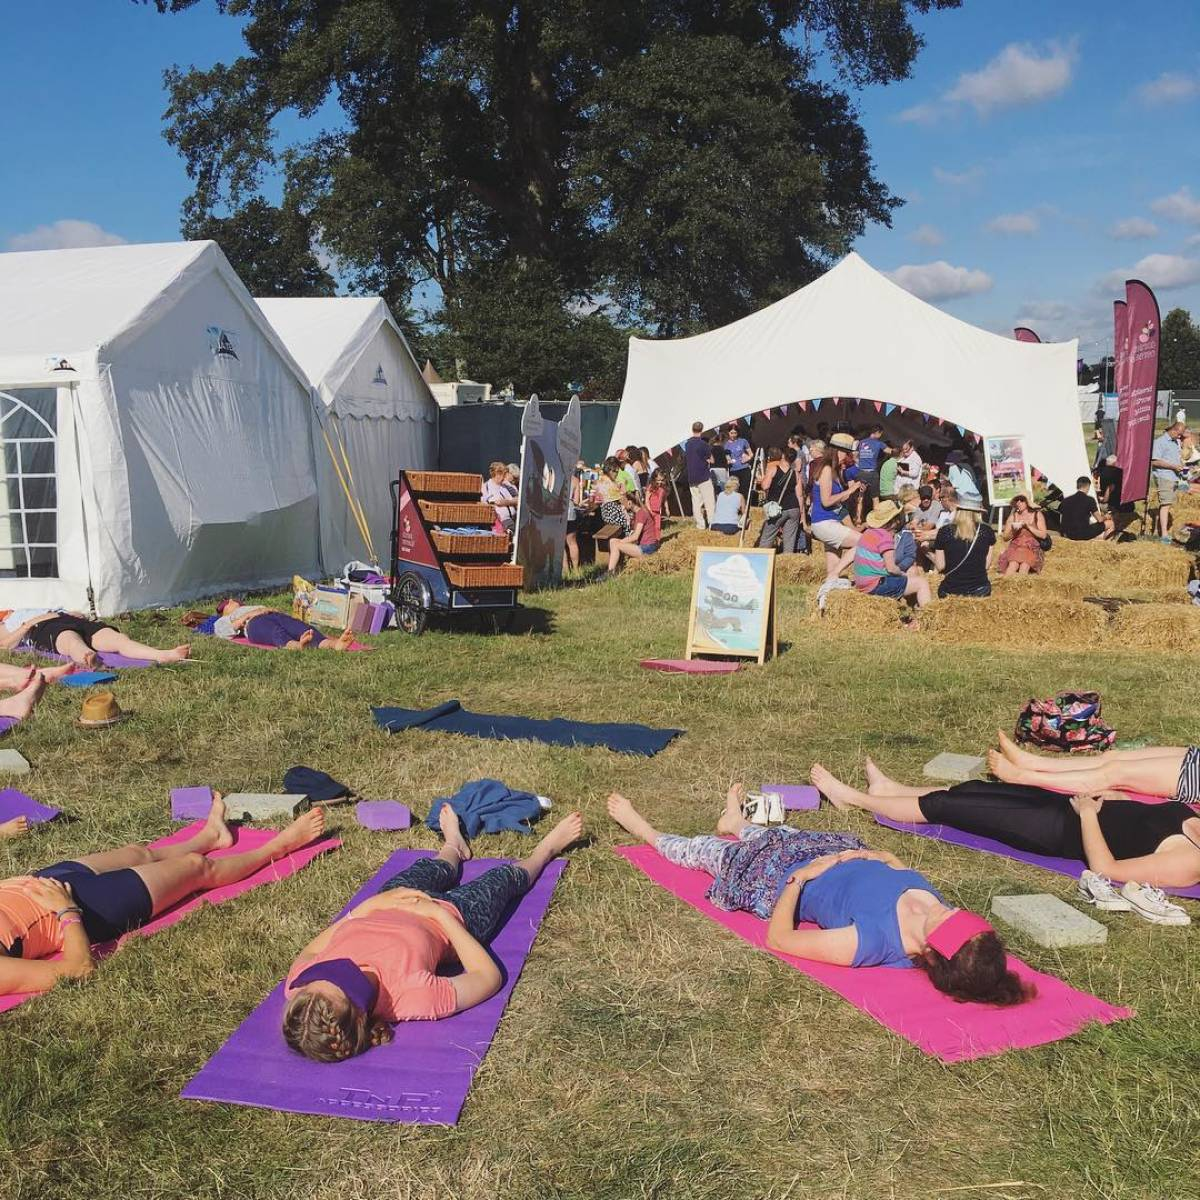 wish you were still here? festival memories from Cornbury and Camp Bestival